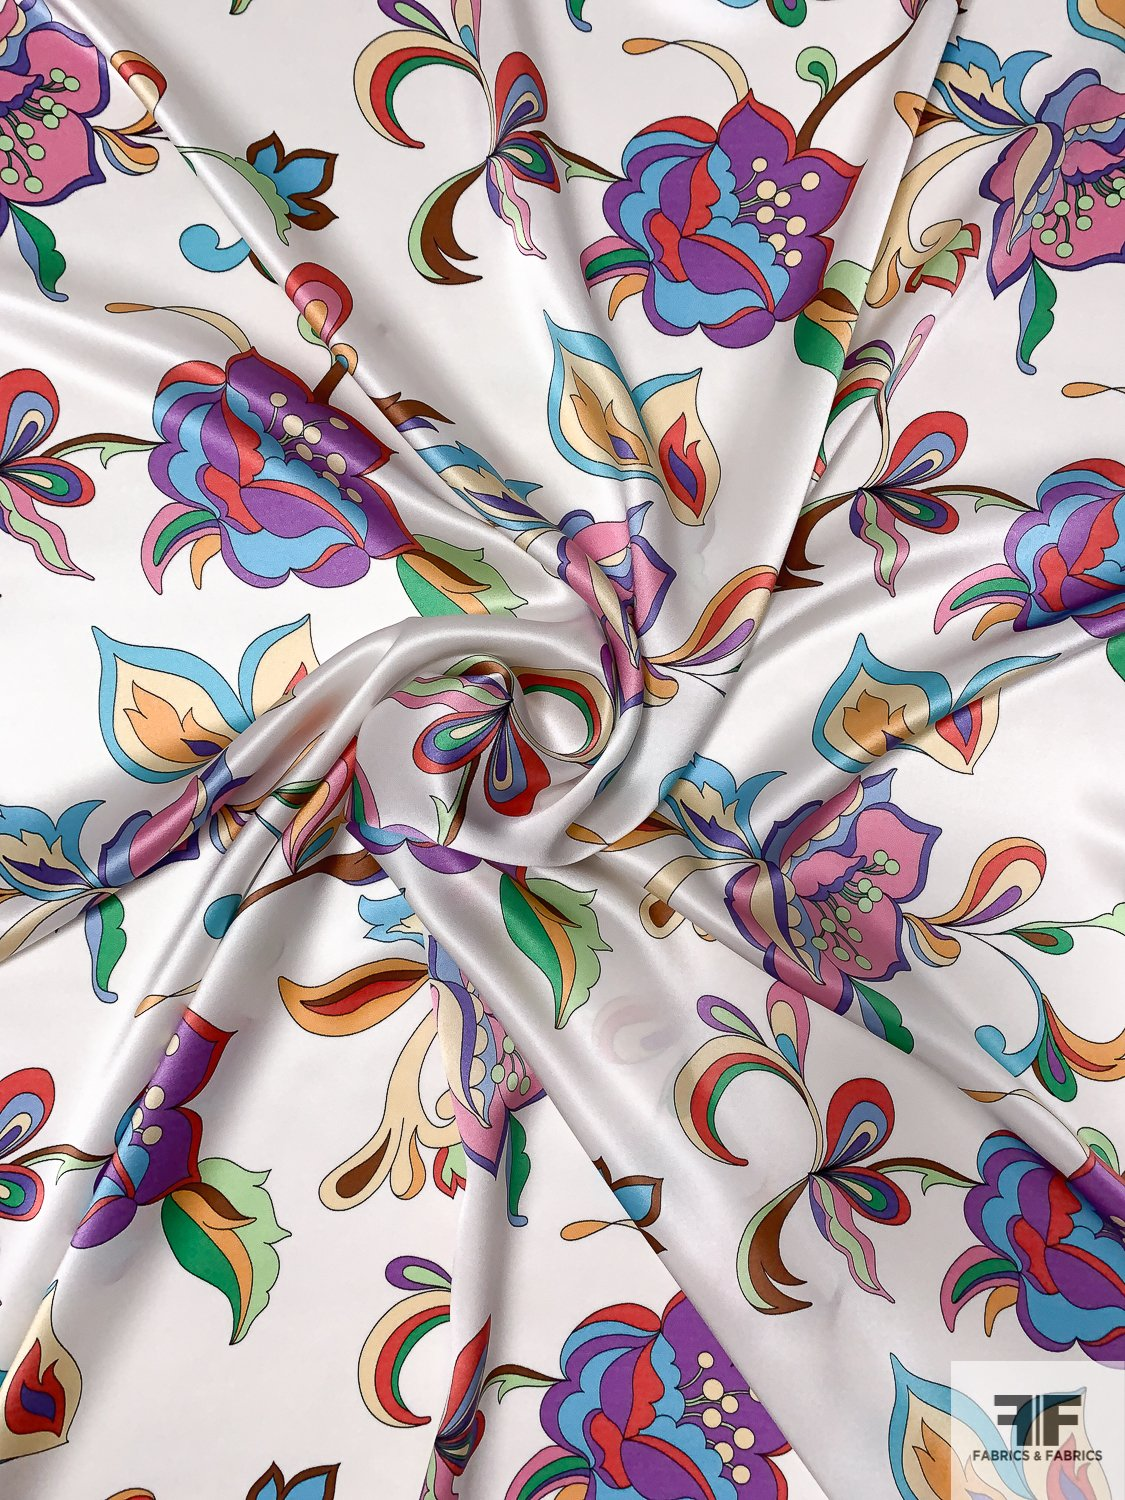 Pucci Inspired Floral Printed Silk Charmeuse - Multicolor